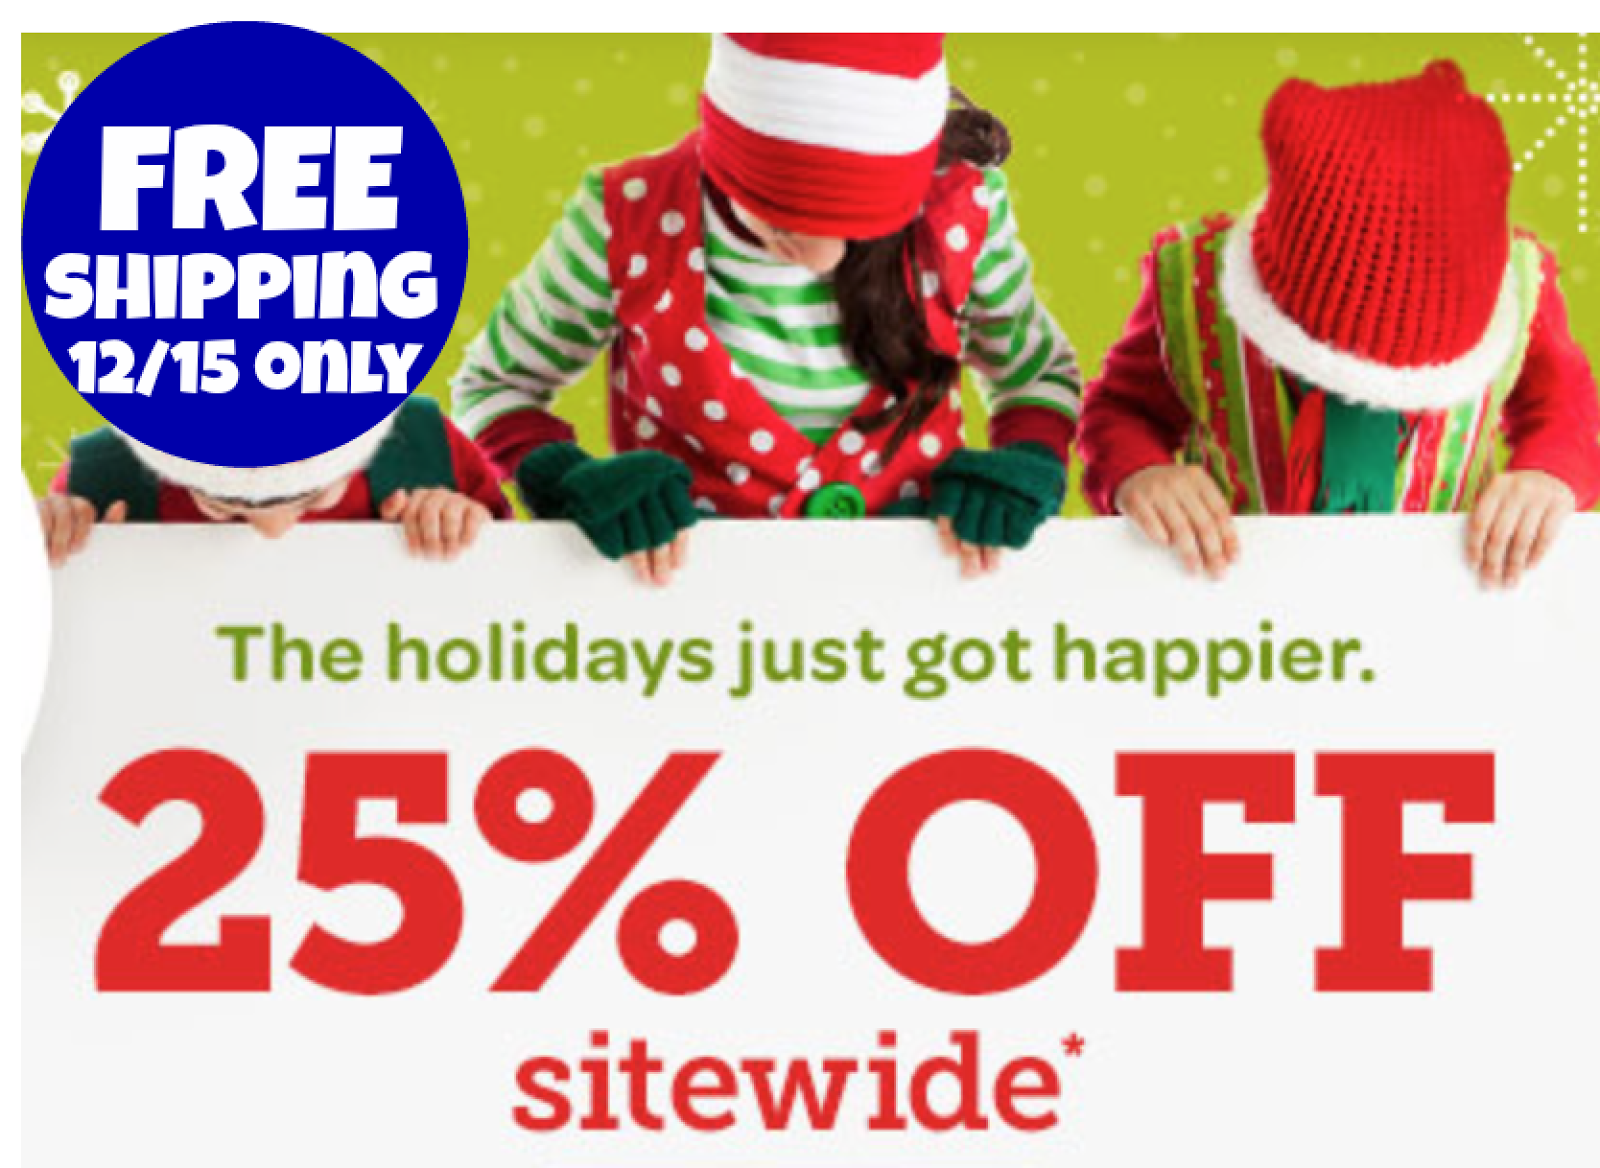 http://www.thebinderladies.com/2014/12/mattel-com-25-off-free-shipping-today.html#.VI9RKofduyM